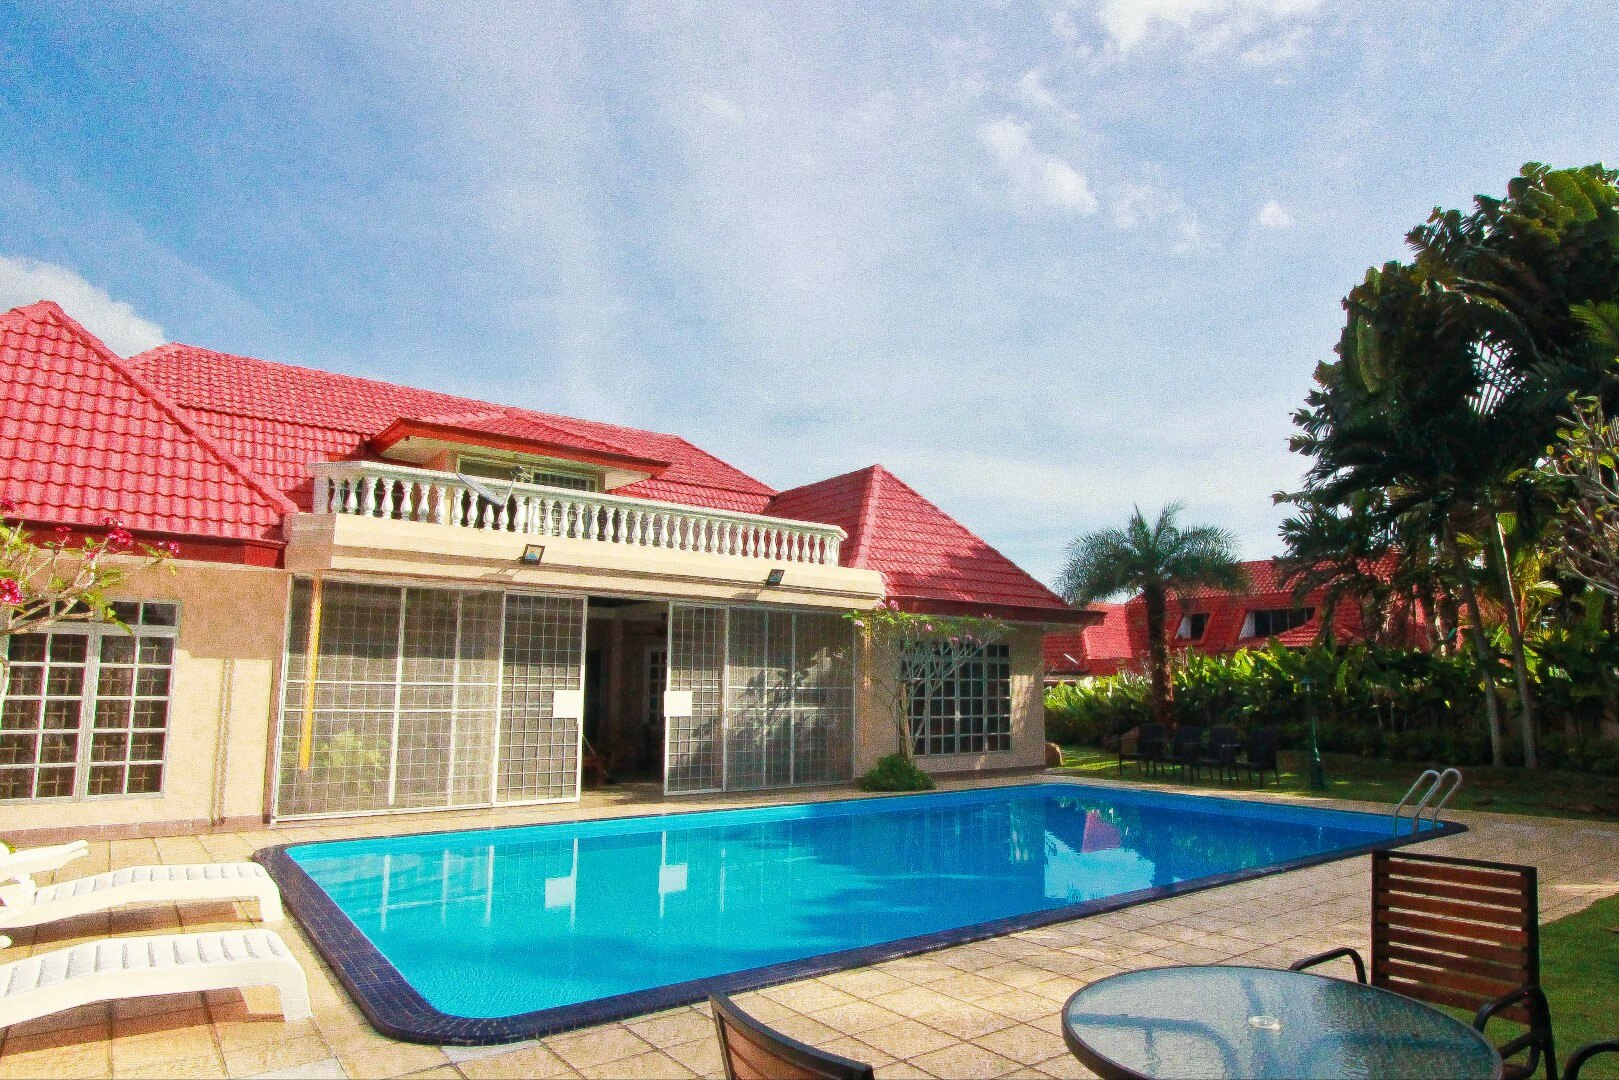 Hotel di Port Dickson Yang Ada Private Pool